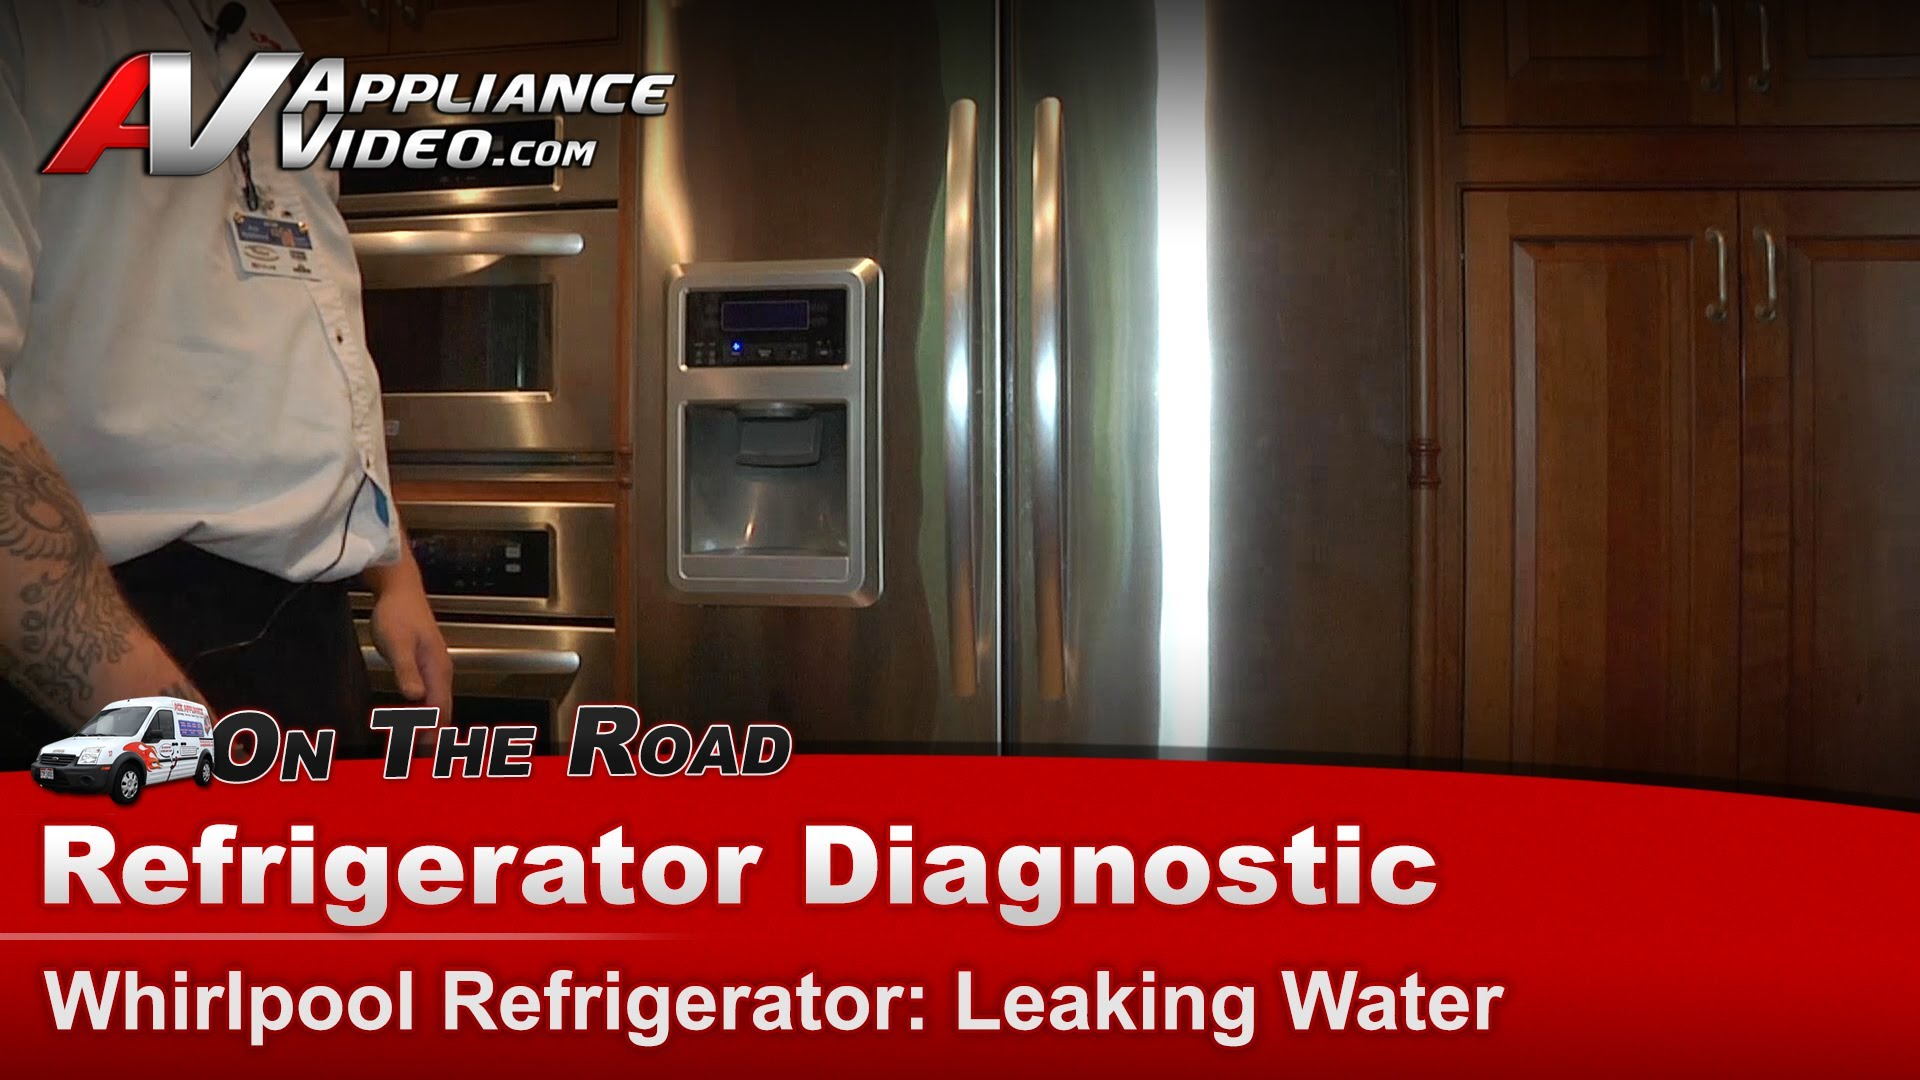 Whirlpool Kfis20xvms1 Refrigerator Diagnostic Leaking